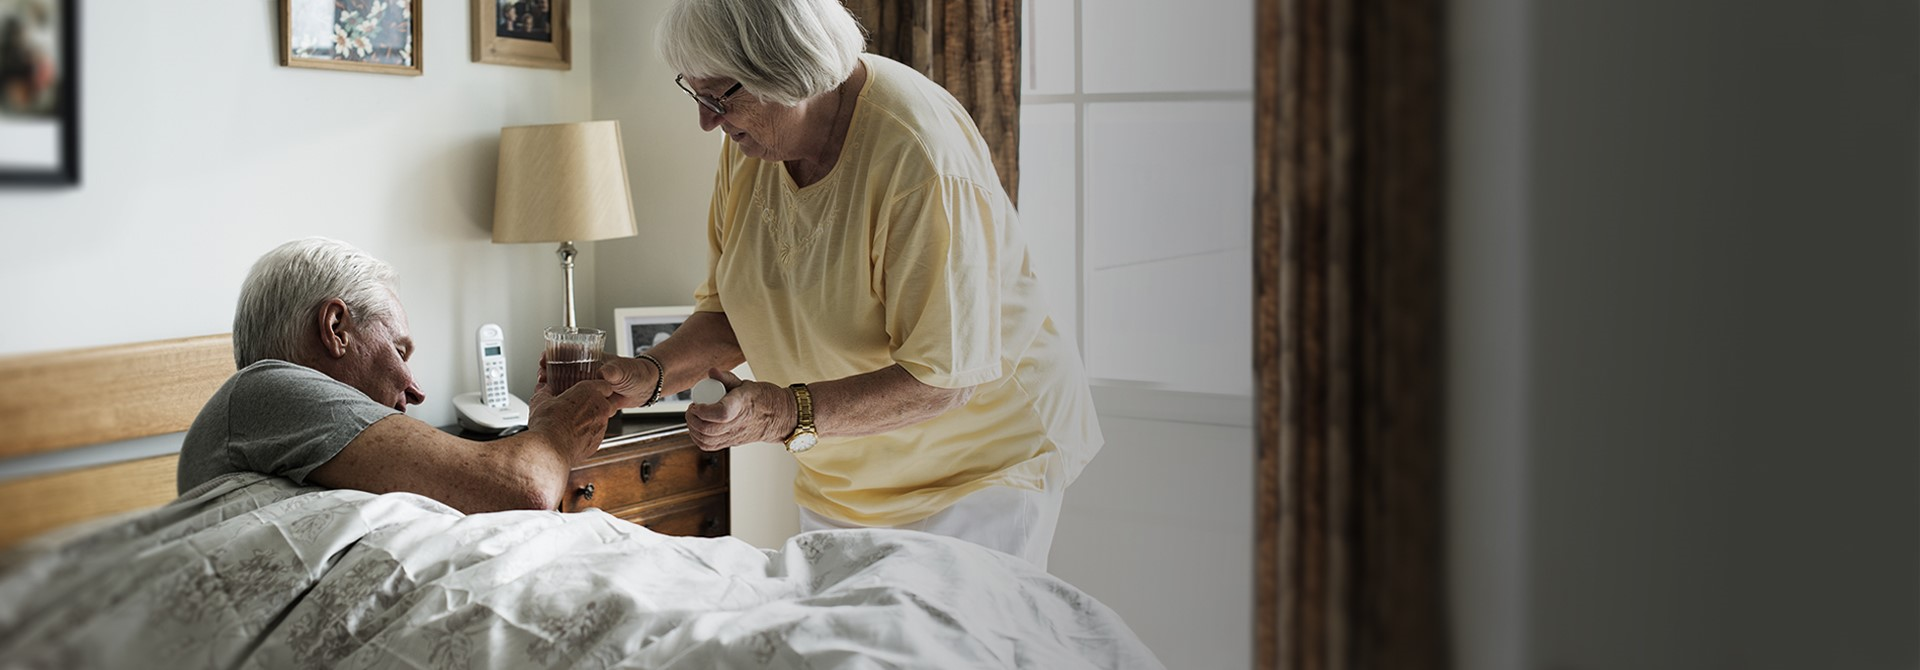 Elderly woman handing a glass of water to elderly man laying in bed